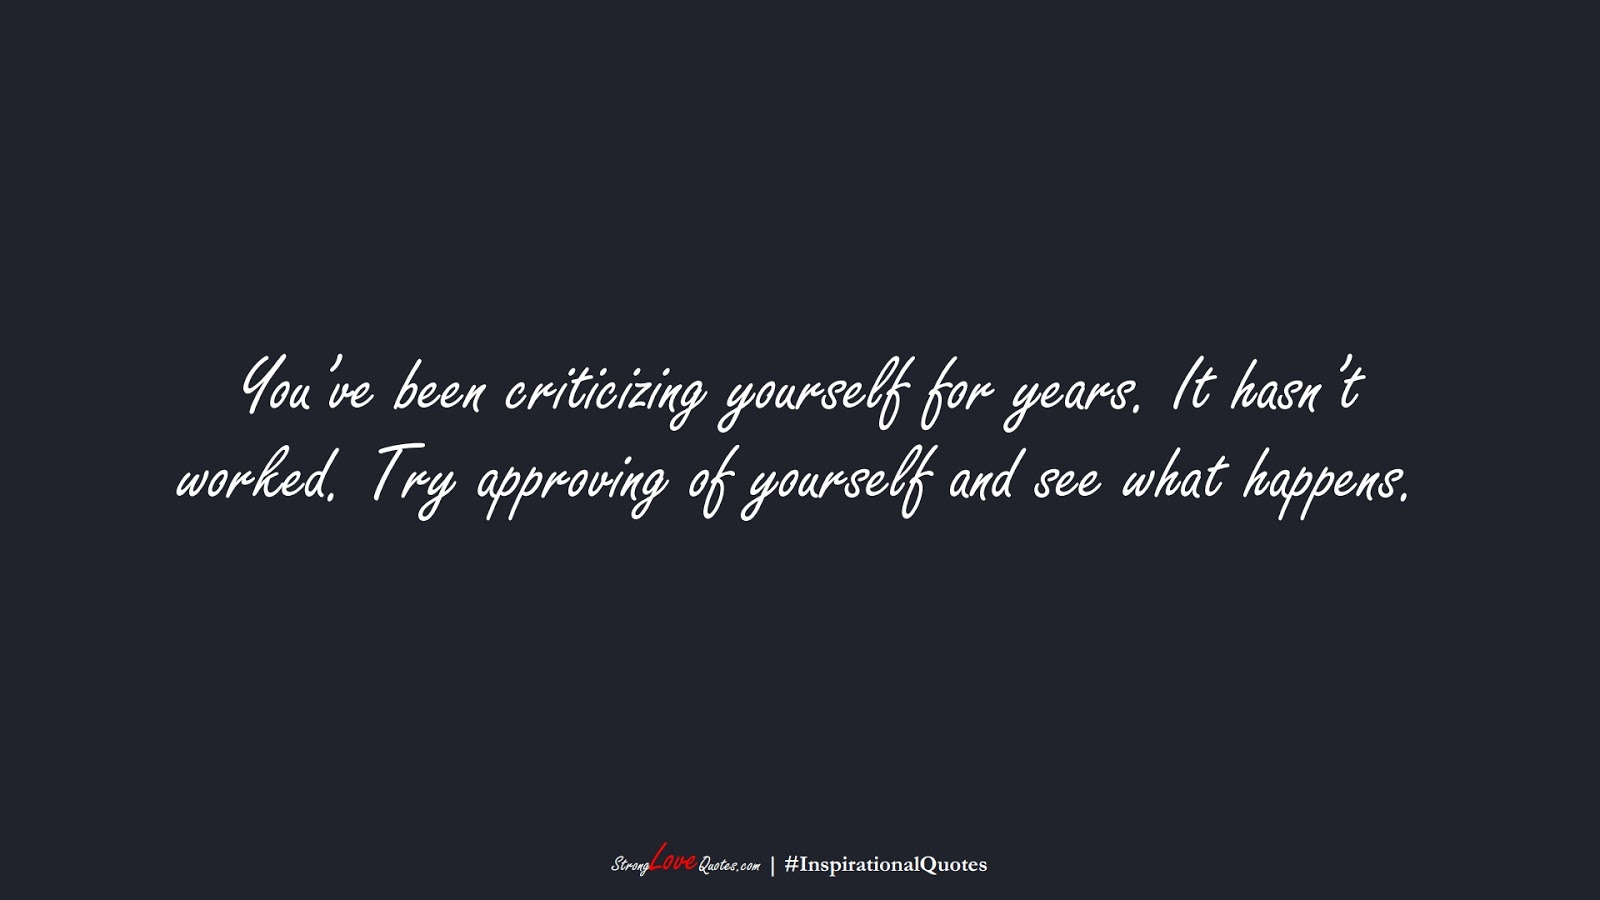 You've been criticizing yourself for years. It hasn't worked. Try approving of yourself and see what happens.FALSE